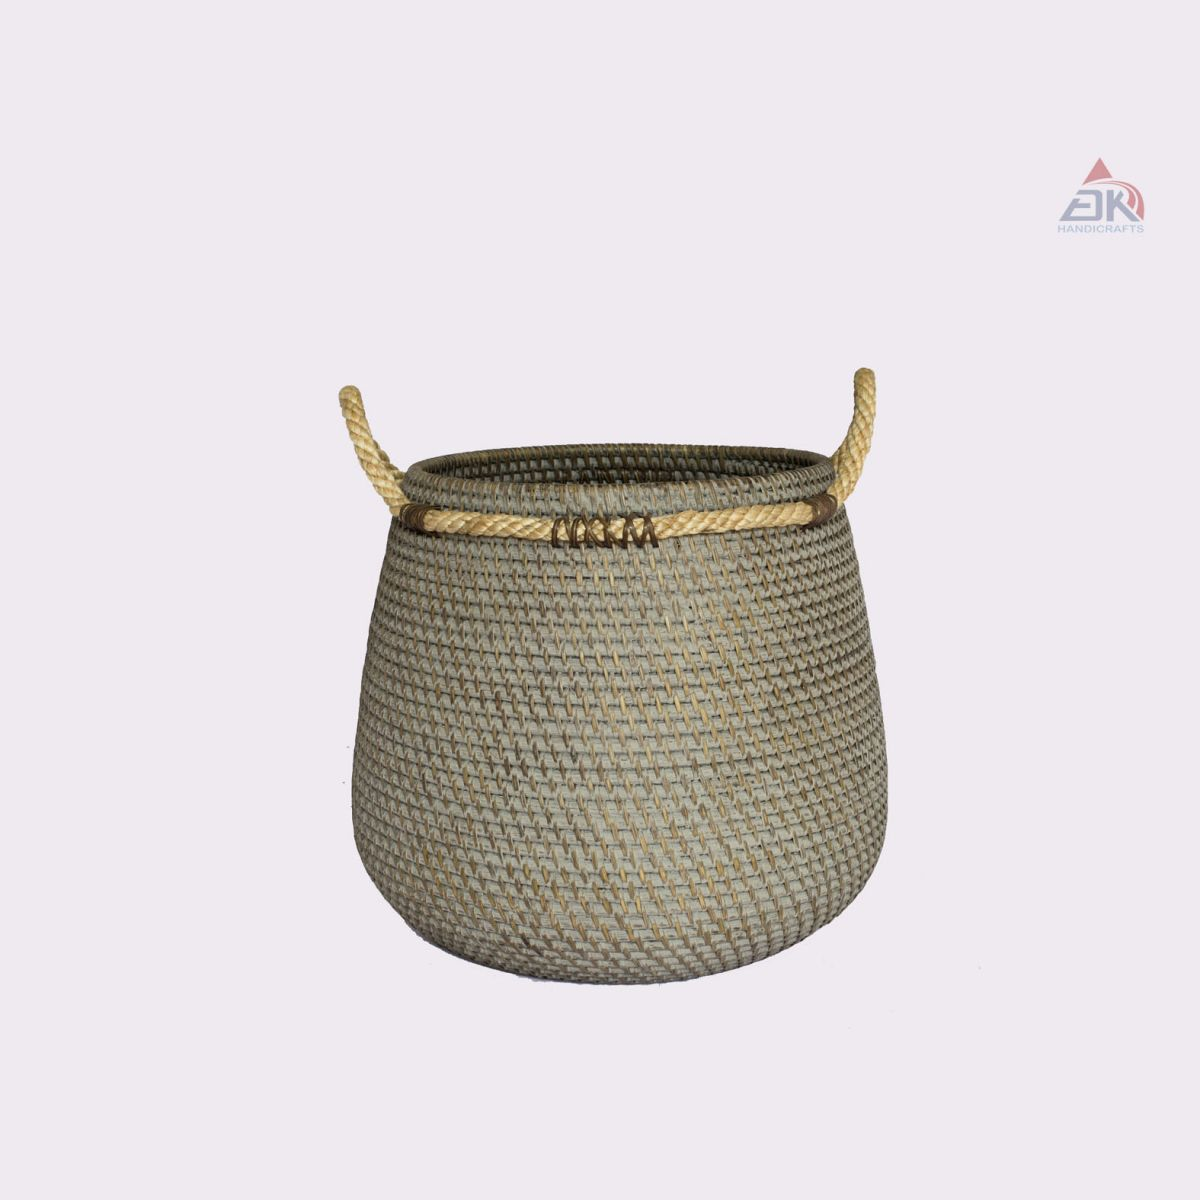 Rattan Combined With Rope